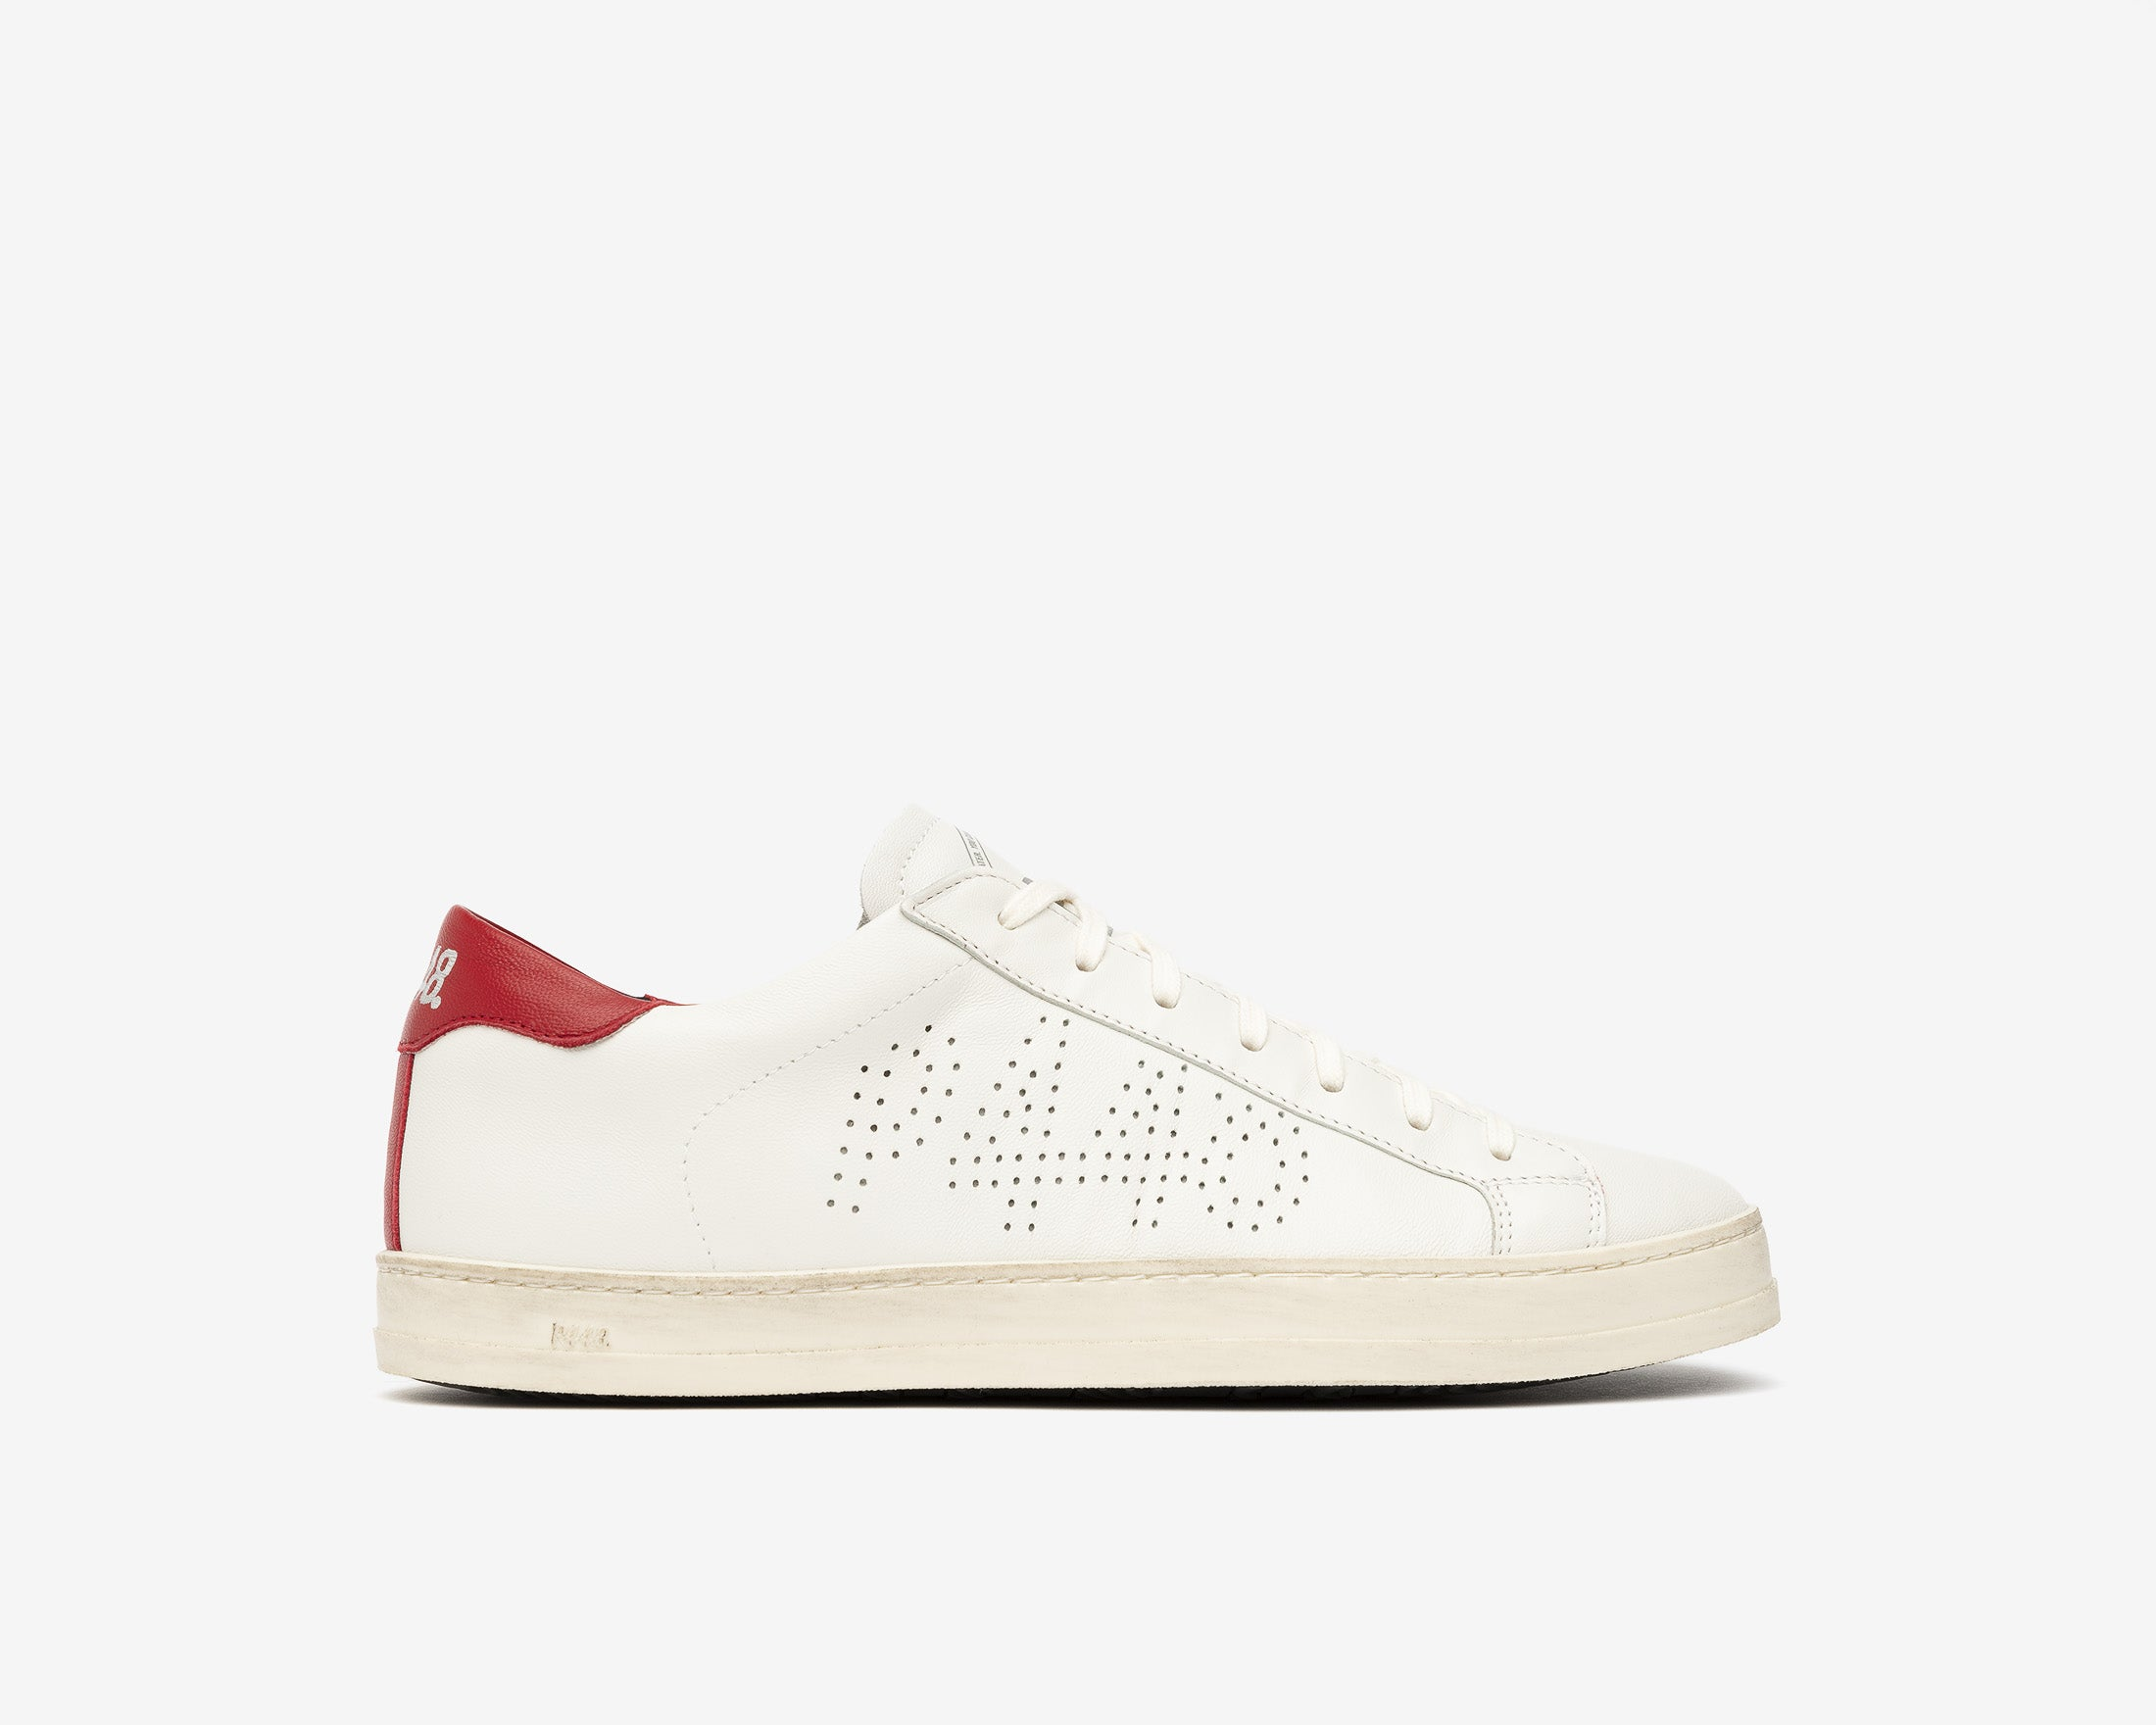 John Low-Top Sneaker in White/Red - Profile